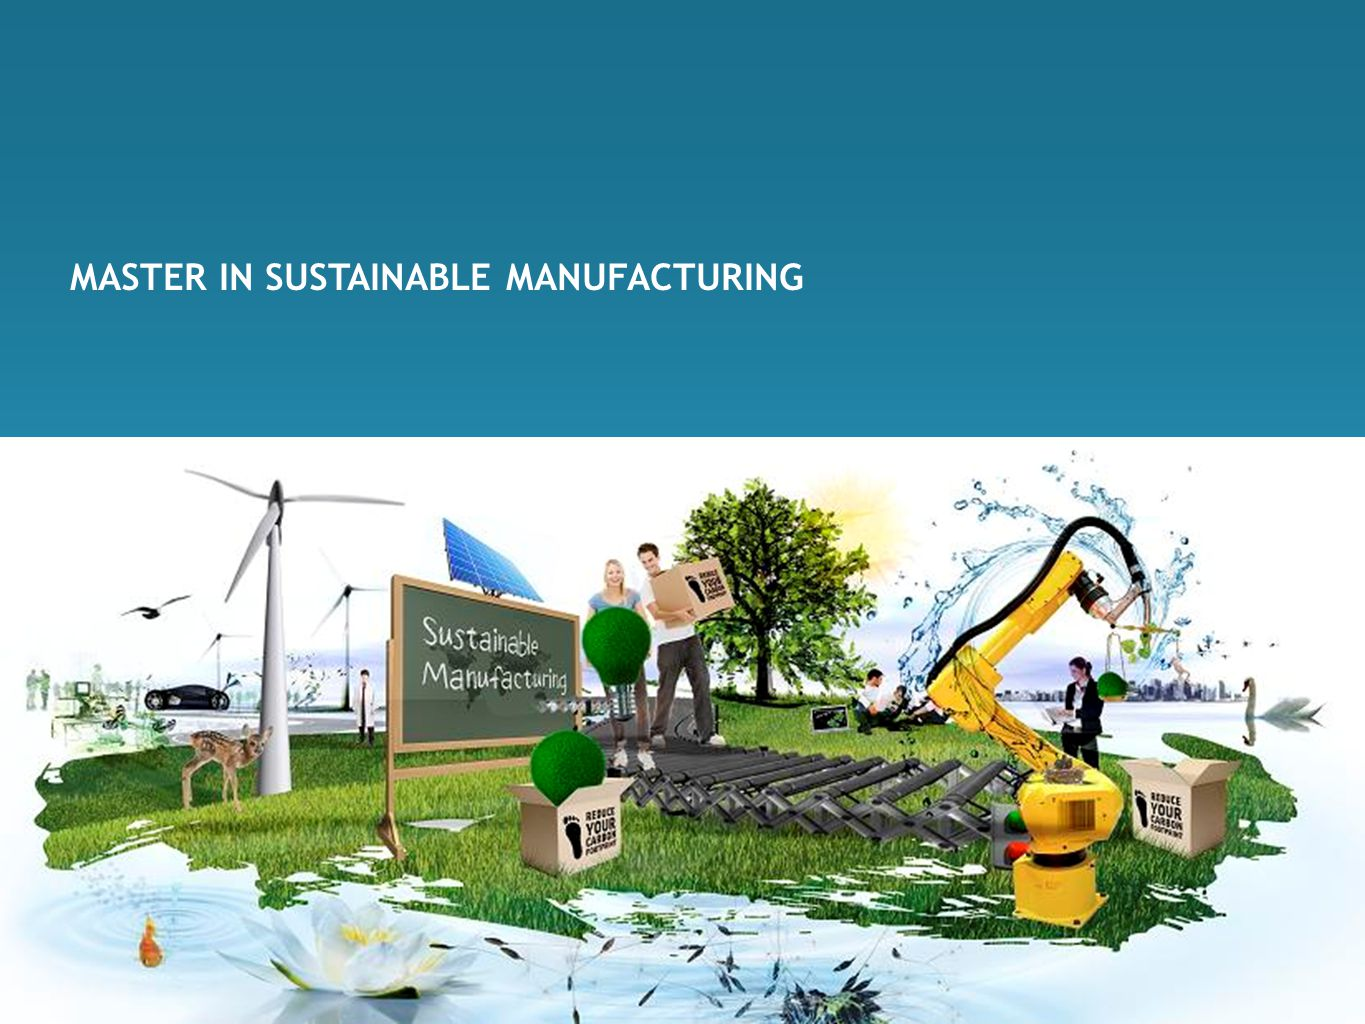 MASTER IN SUSTAINABLE MANUFACTURING